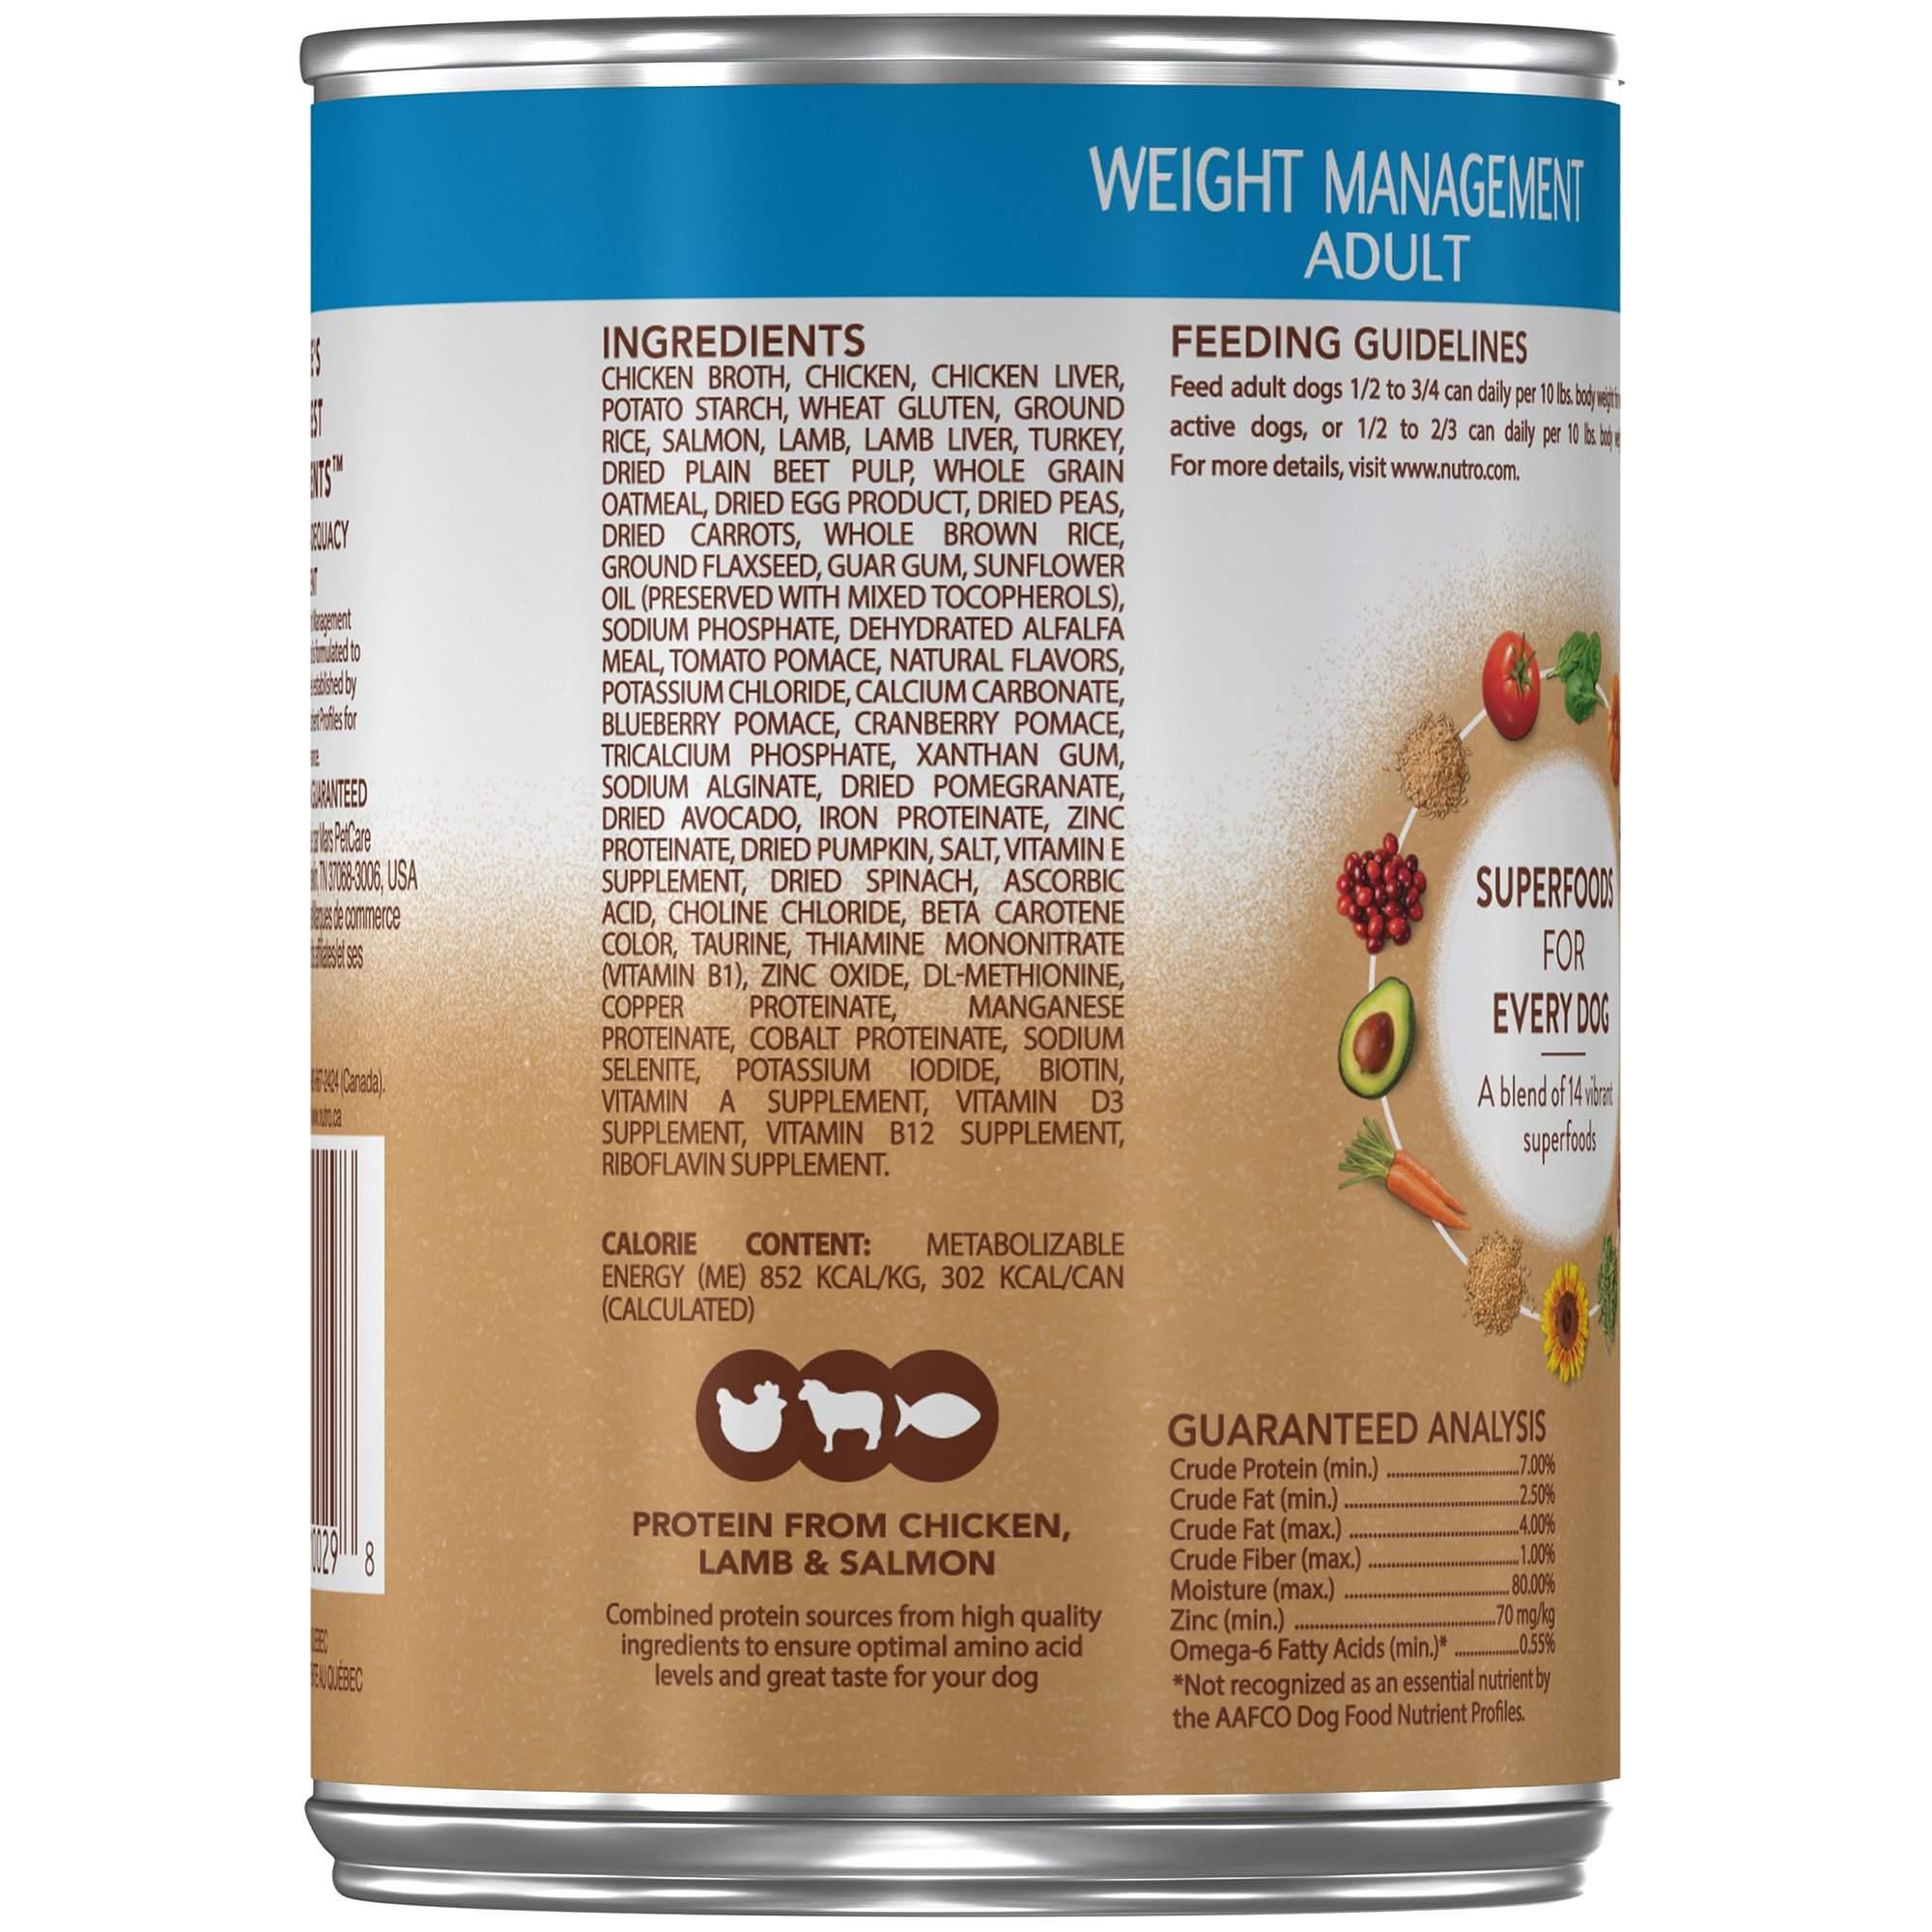 Nutro ULTRA Adult Weight Management Chunks in Gravy Canned Dog Food 12.5 oz. Cans (Pack of 12) by Nutro (Image #3)